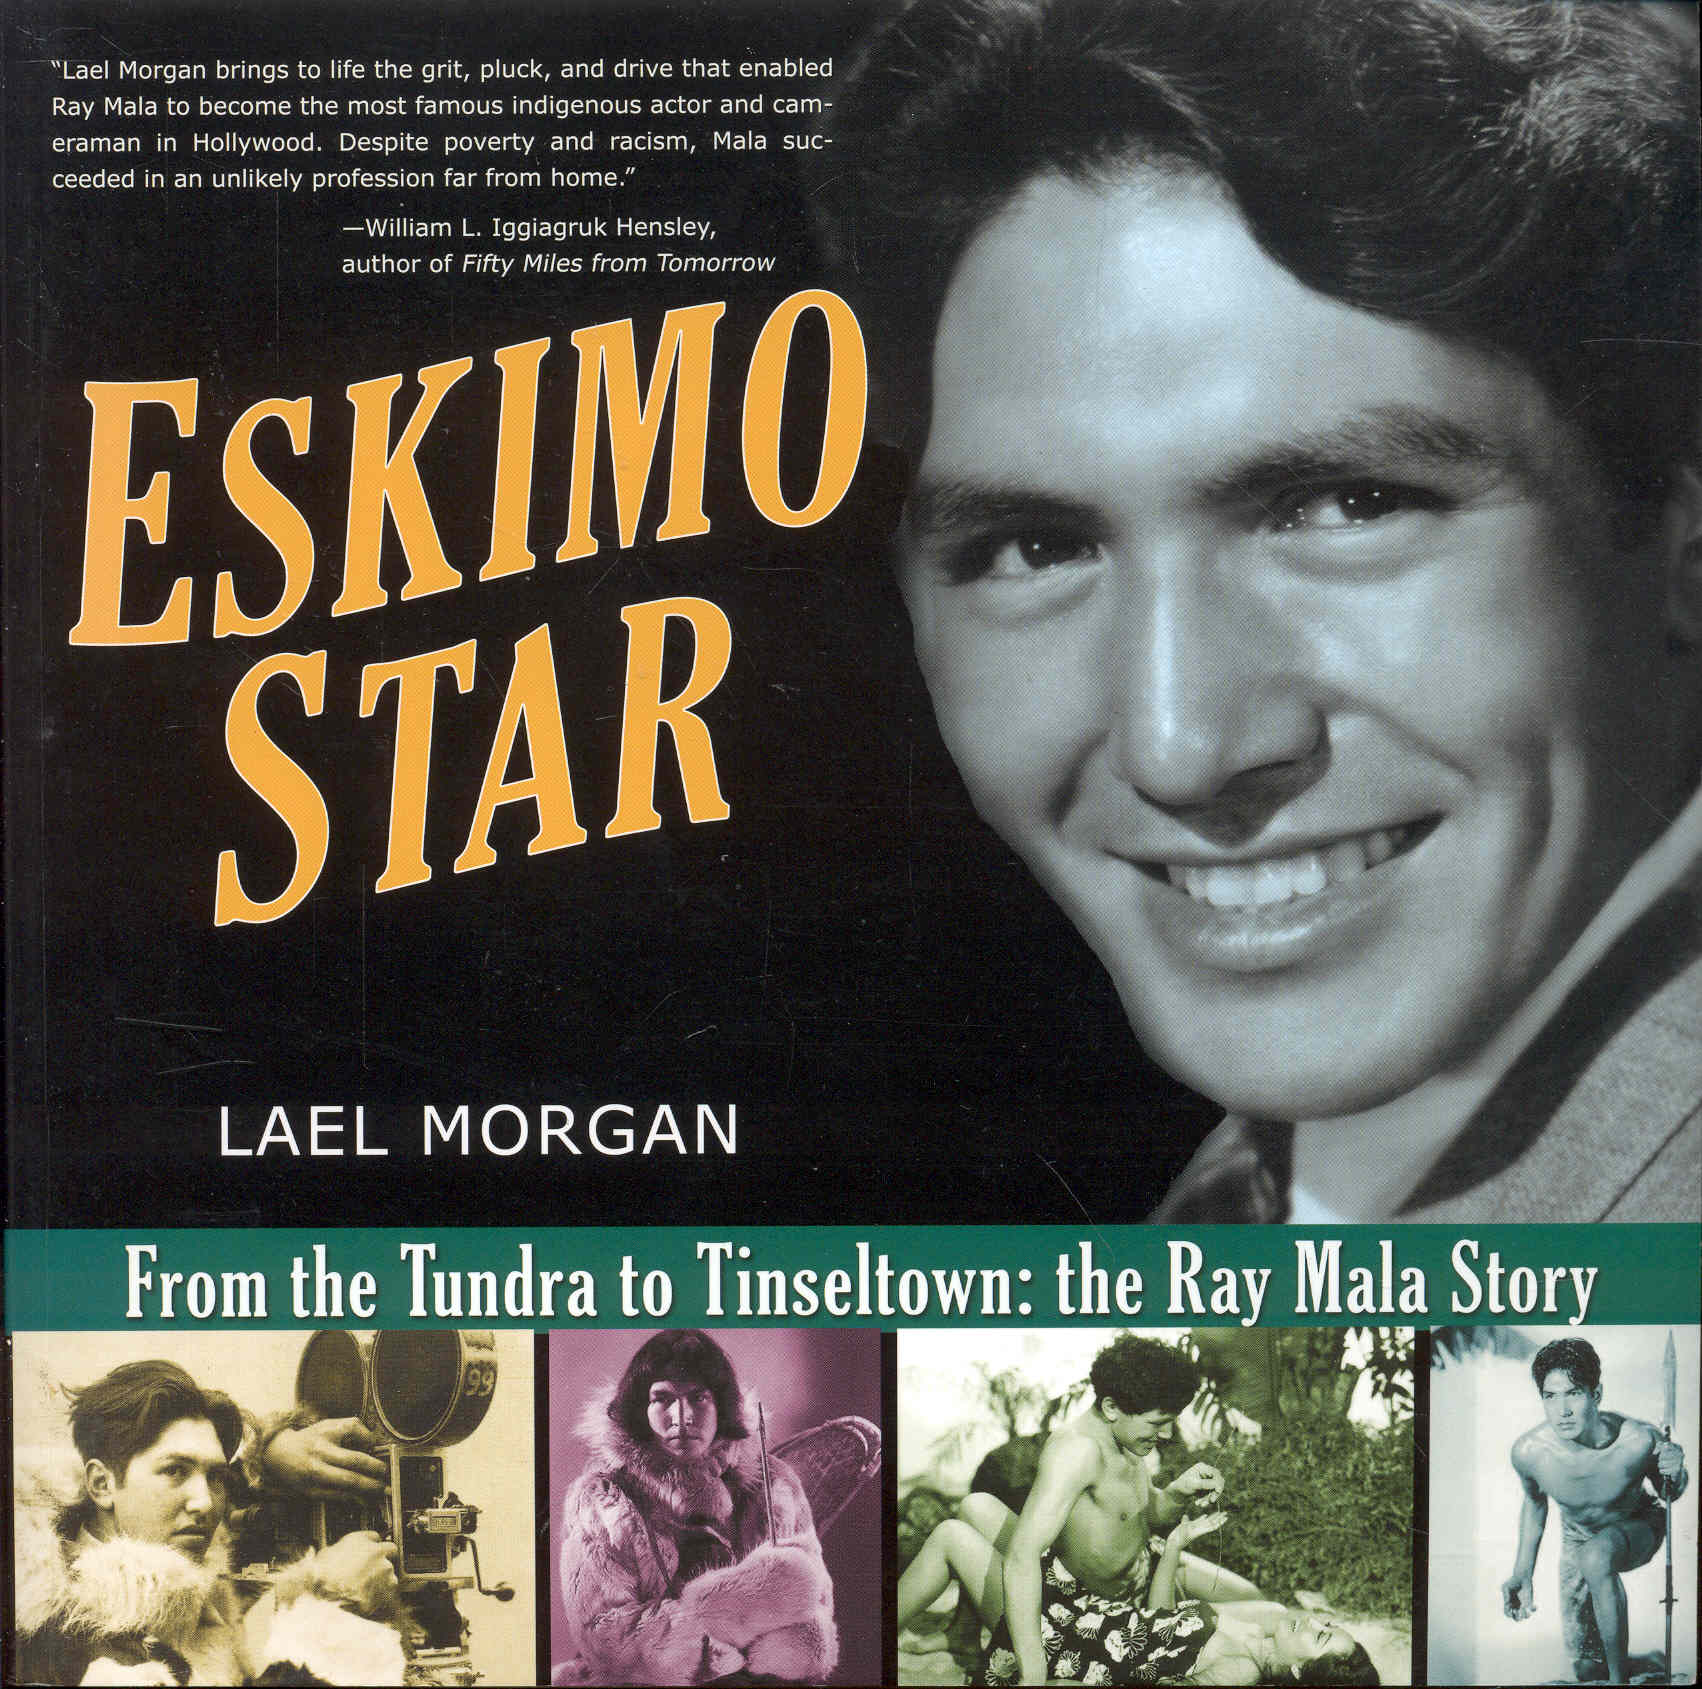 Image for Eskimo Star (From the Tundra to Tinseltown the Ray Mala Story)